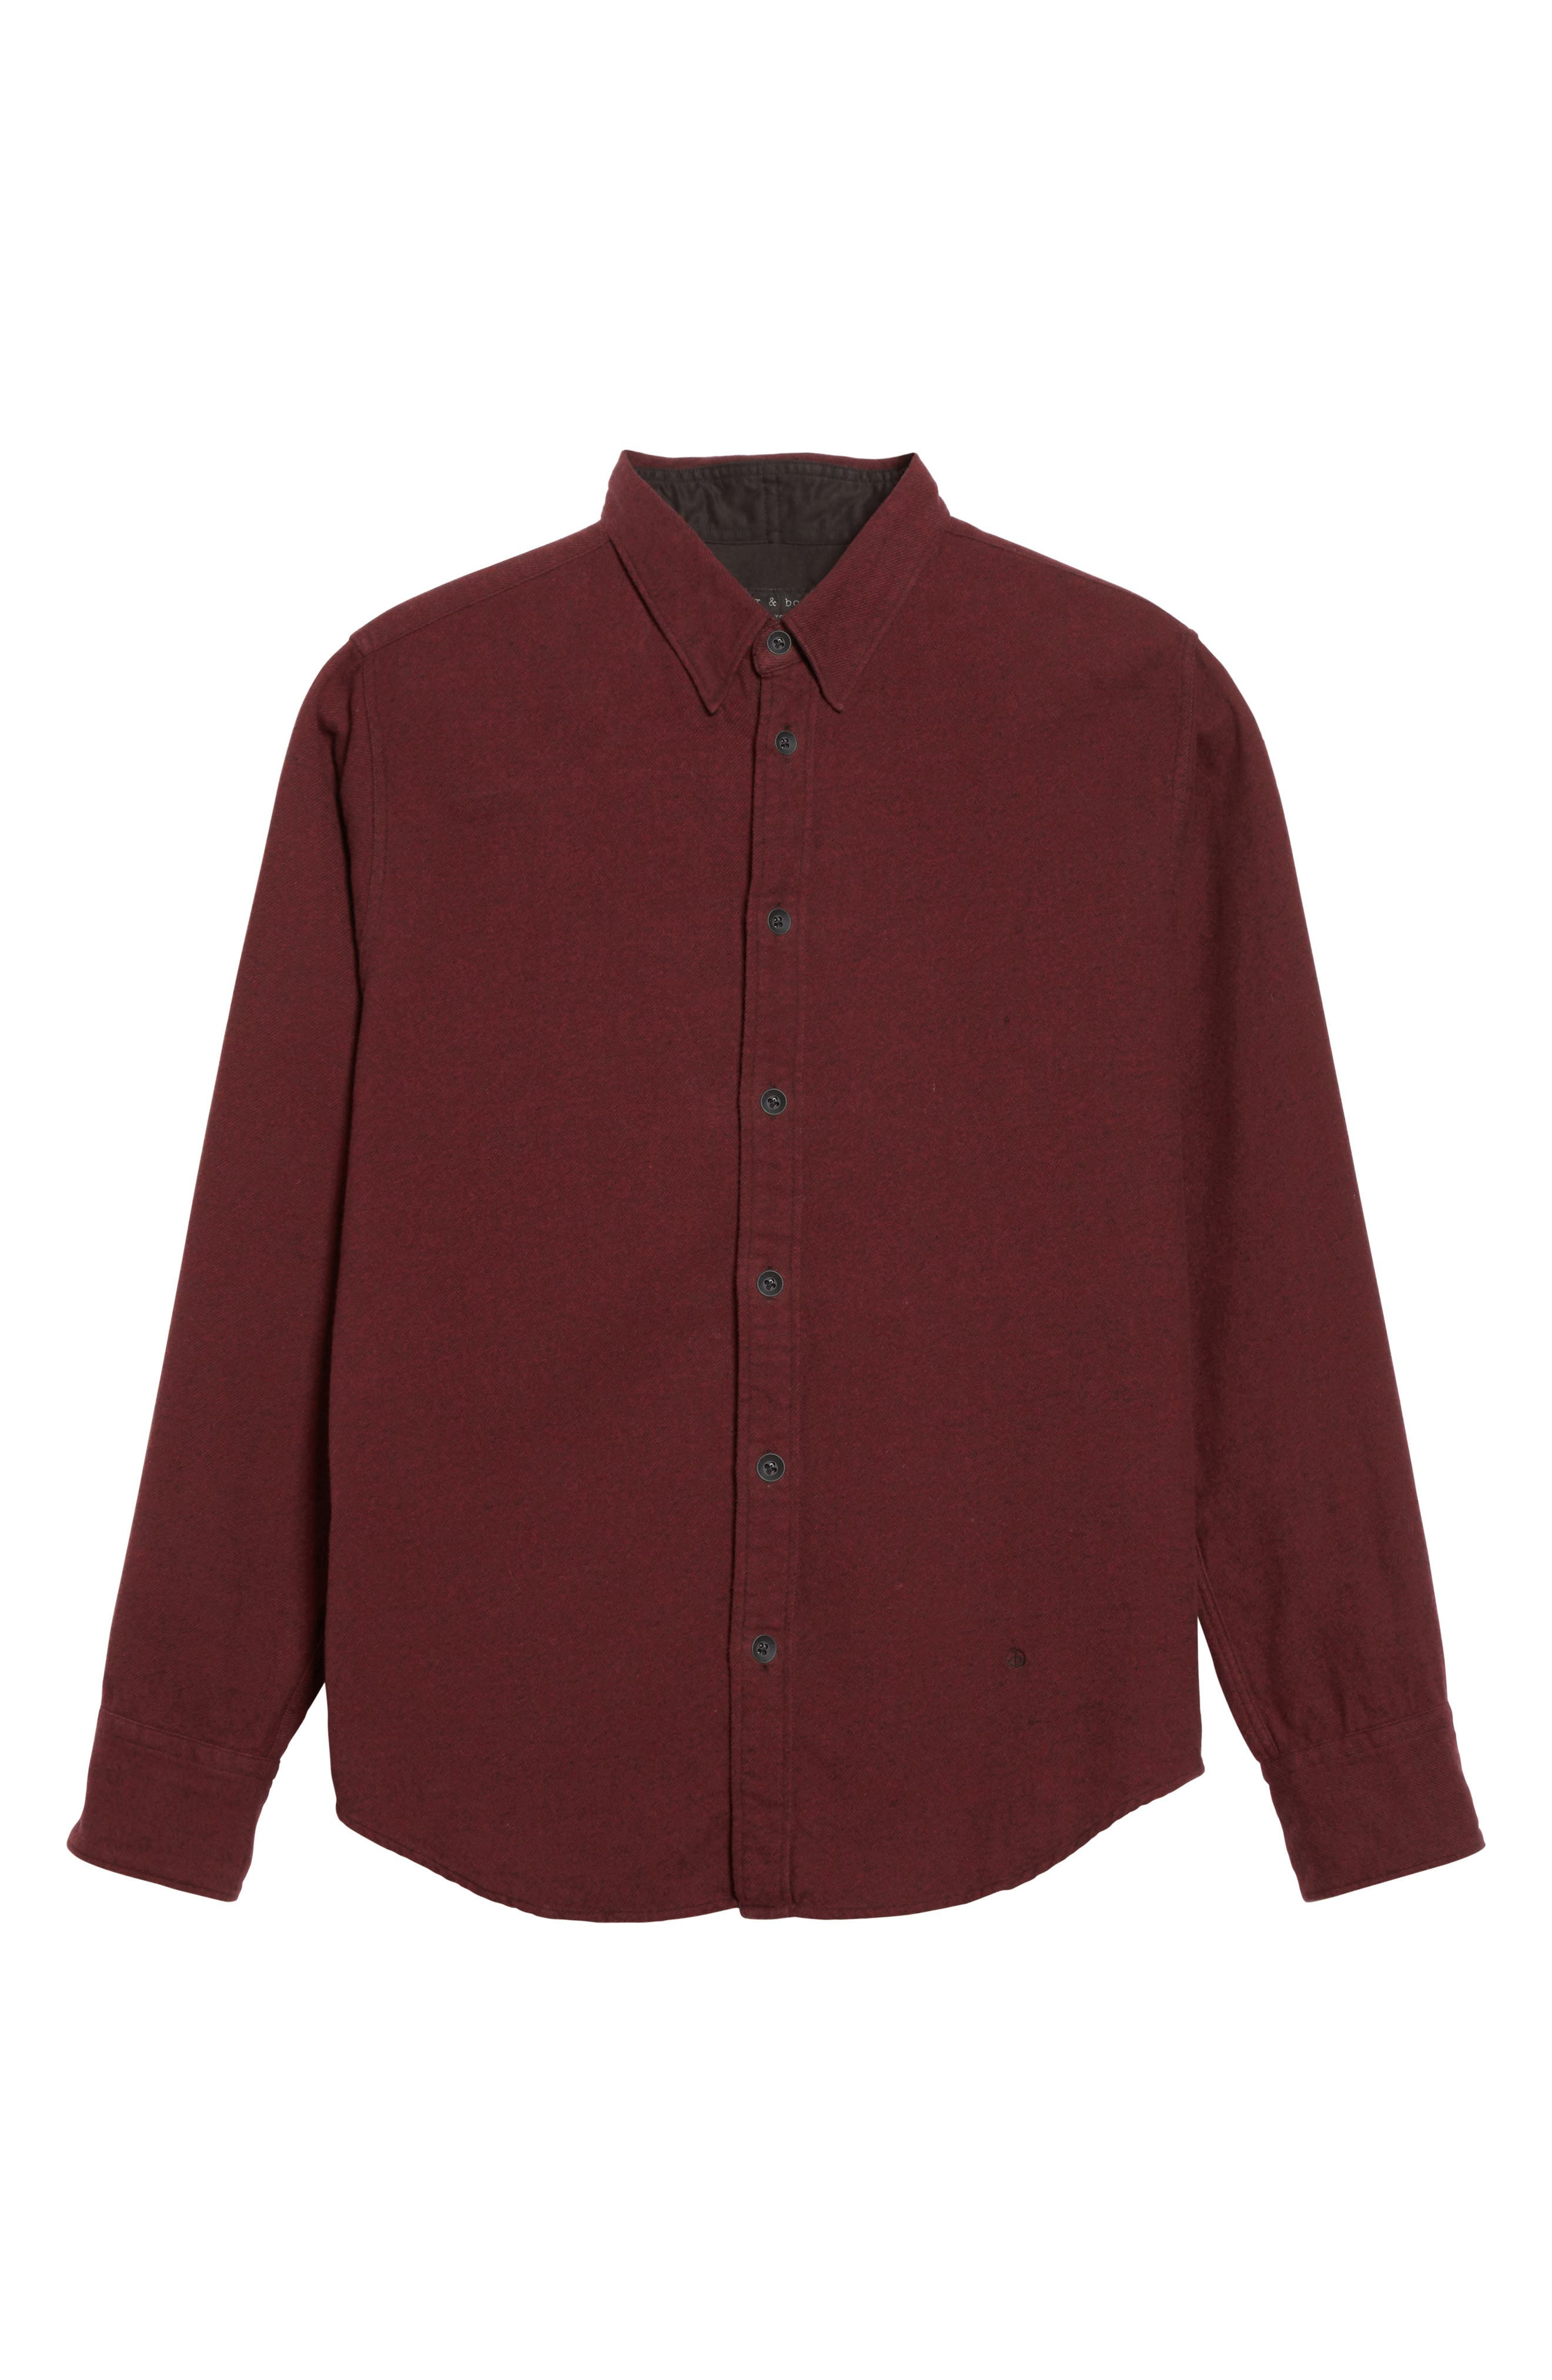 Fit 2 Base Woven Shirt,                             Alternate thumbnail 6, color,                             Burgundy